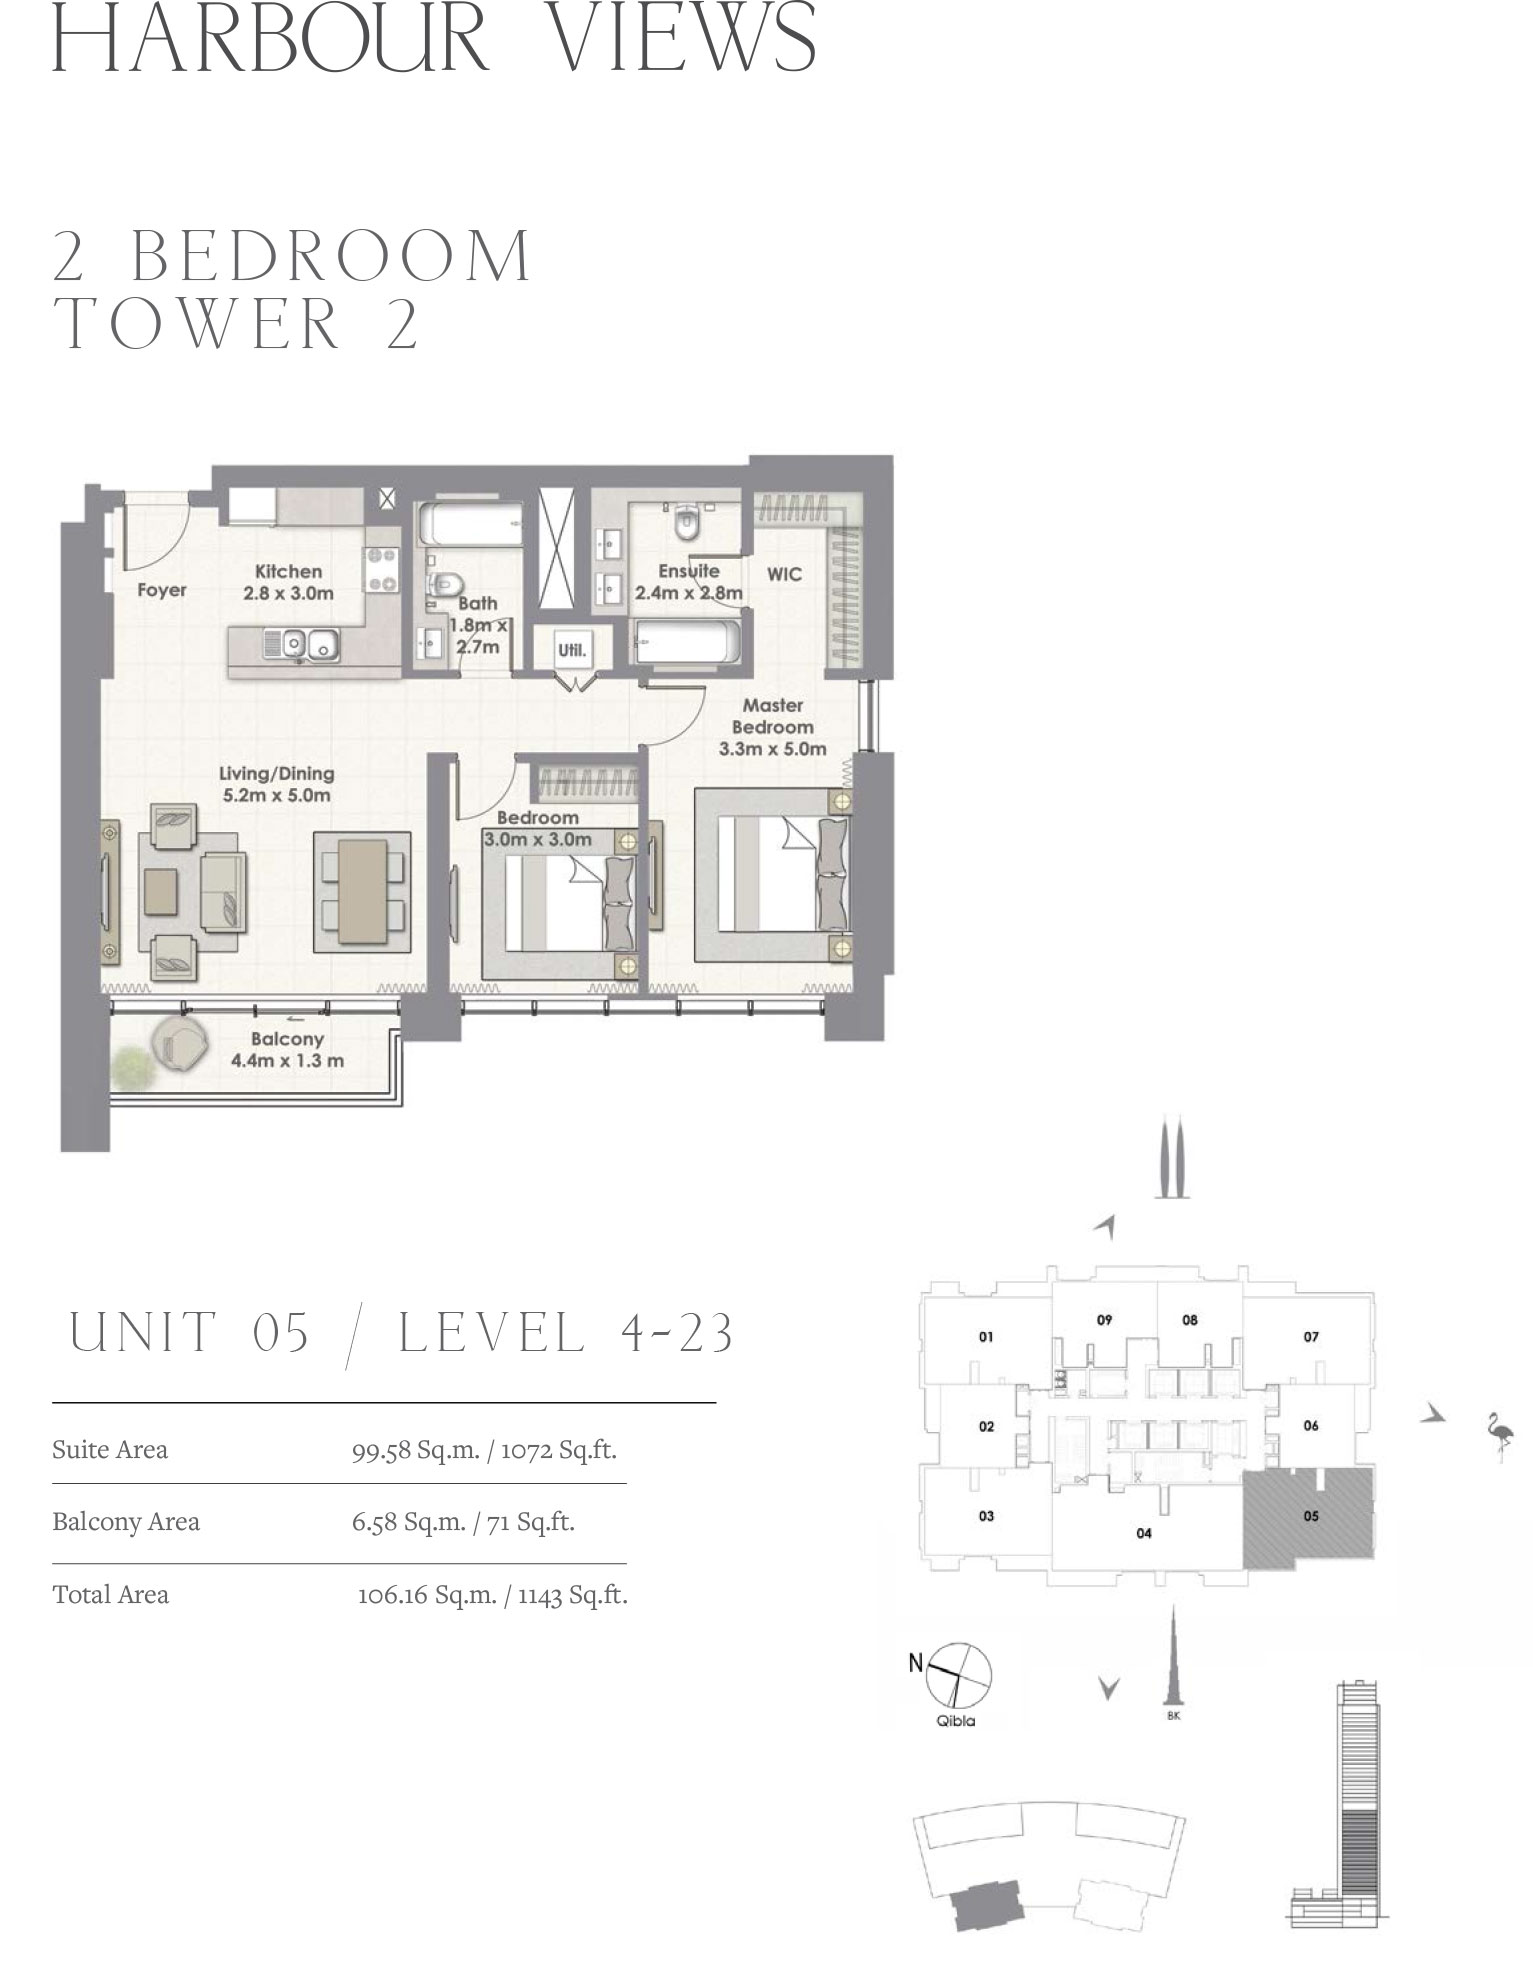 1 Bedroom Tower 2, Unit 05/Level 4-23